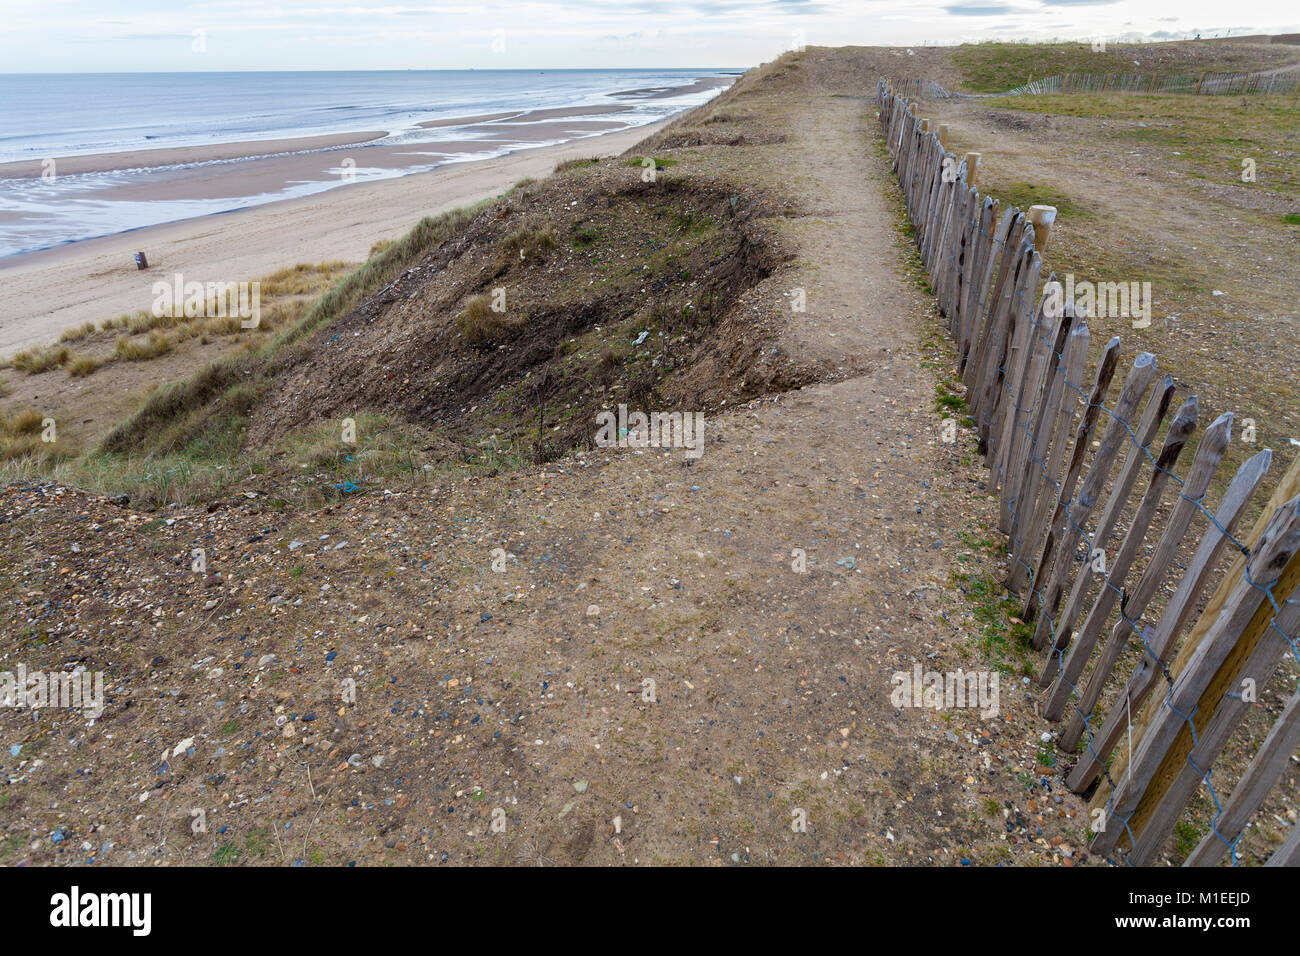 Precarious footpath along the cliffs at Hartlepool,England,UK - Stock Image